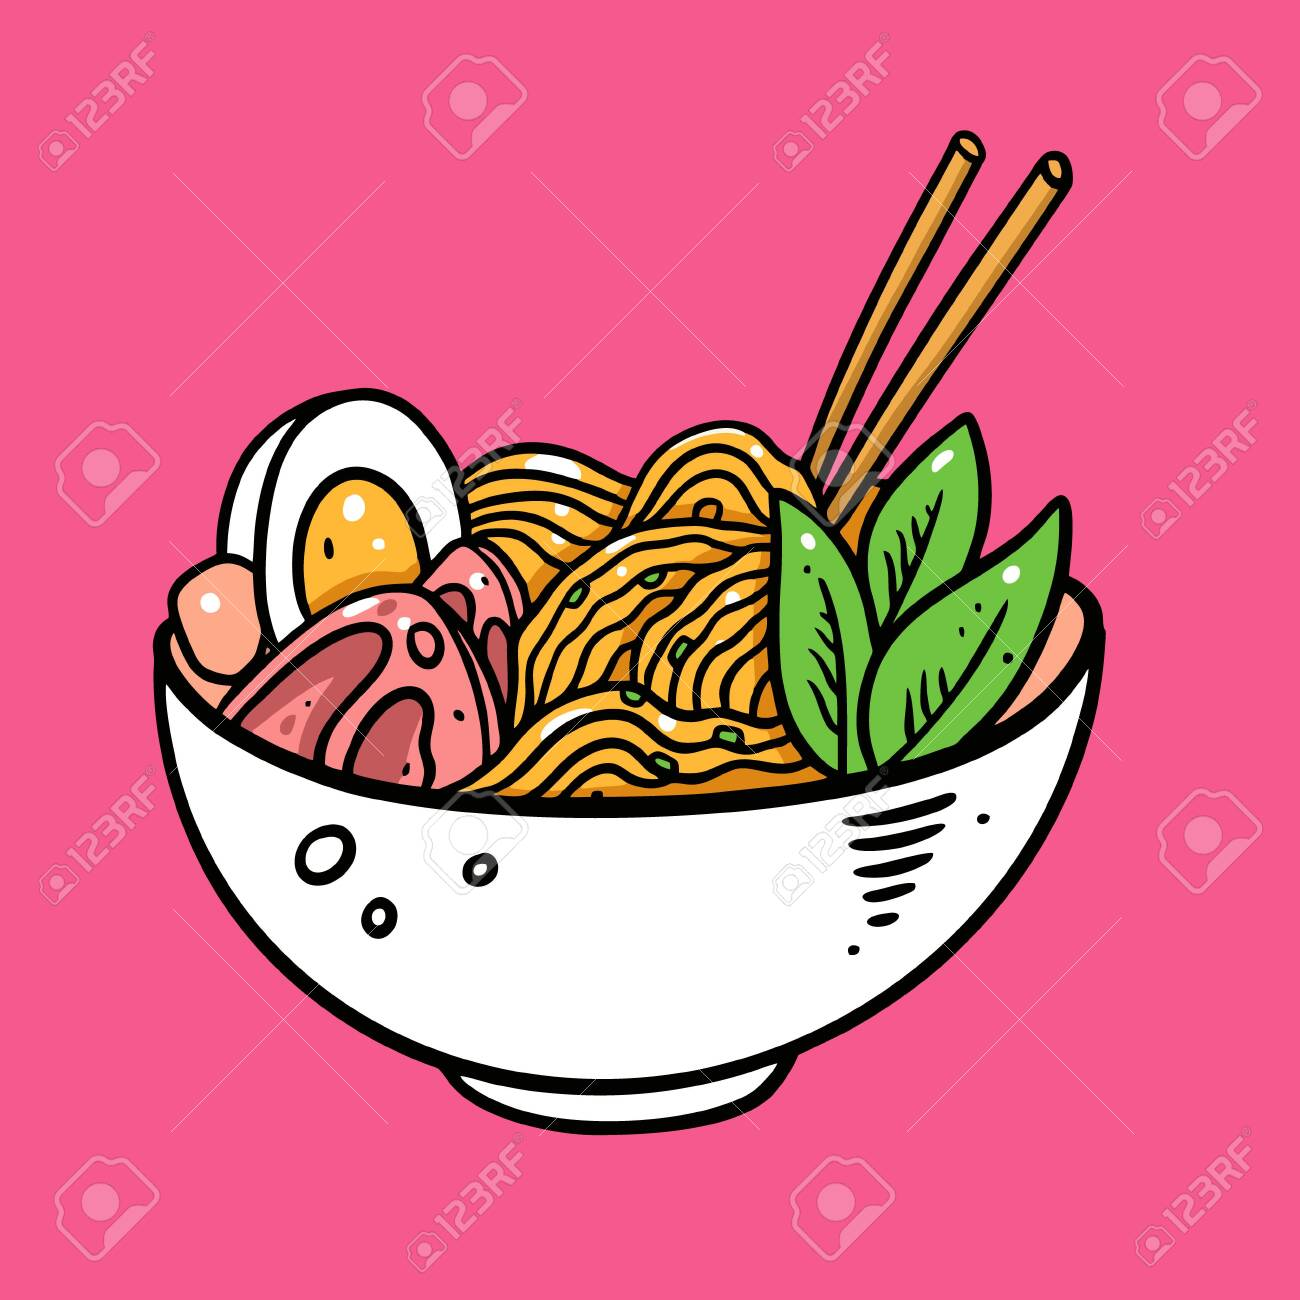 Japanese Ramen Hand Drawn Colorful Vector Illustration Isolated Royalty Free Cliparts Vectors And Stock Illustration Image 150611464